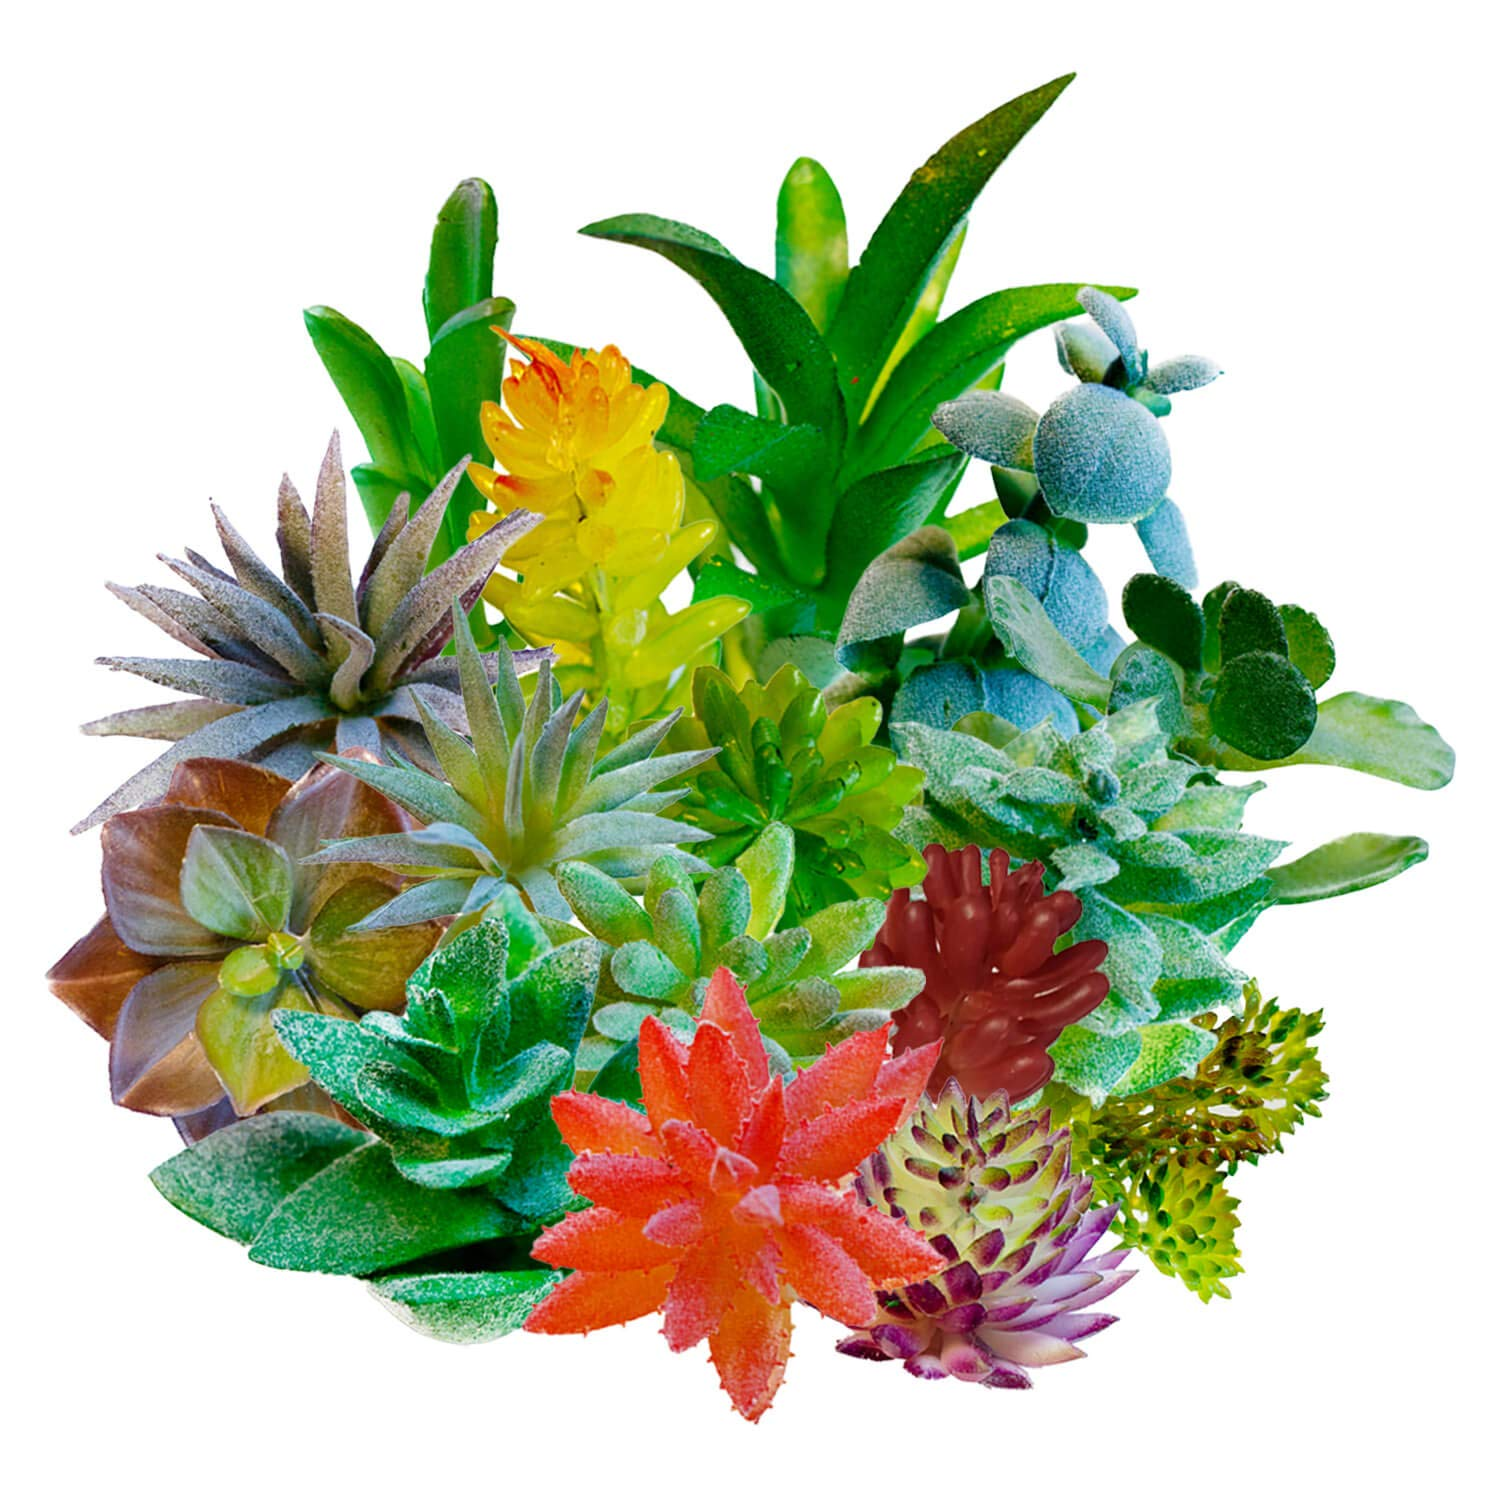 Artificial Succulent Plants Faux Assorted – 16PCS Unpotted Mini Plastic Greenery Bulk Realistic Decoration Small Fake Flowers Cactus Planta – Great for Indoor Outdoor Home Wall Decor, Vase Arrangement